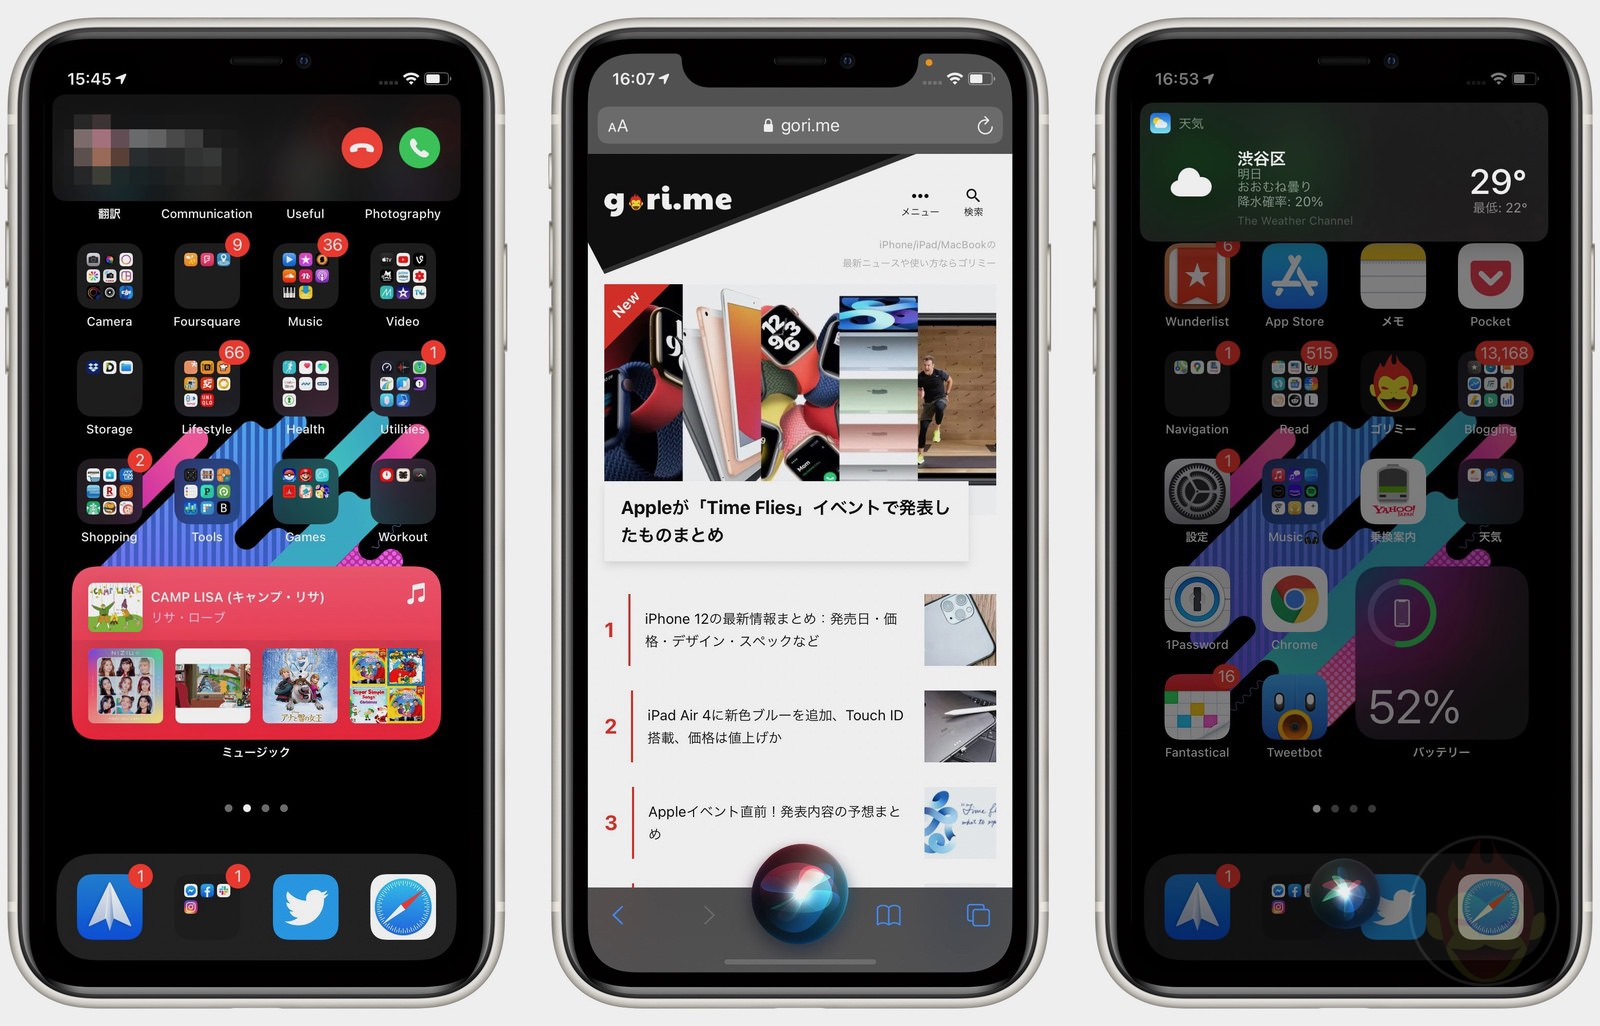 IOS14 features worth trying 01